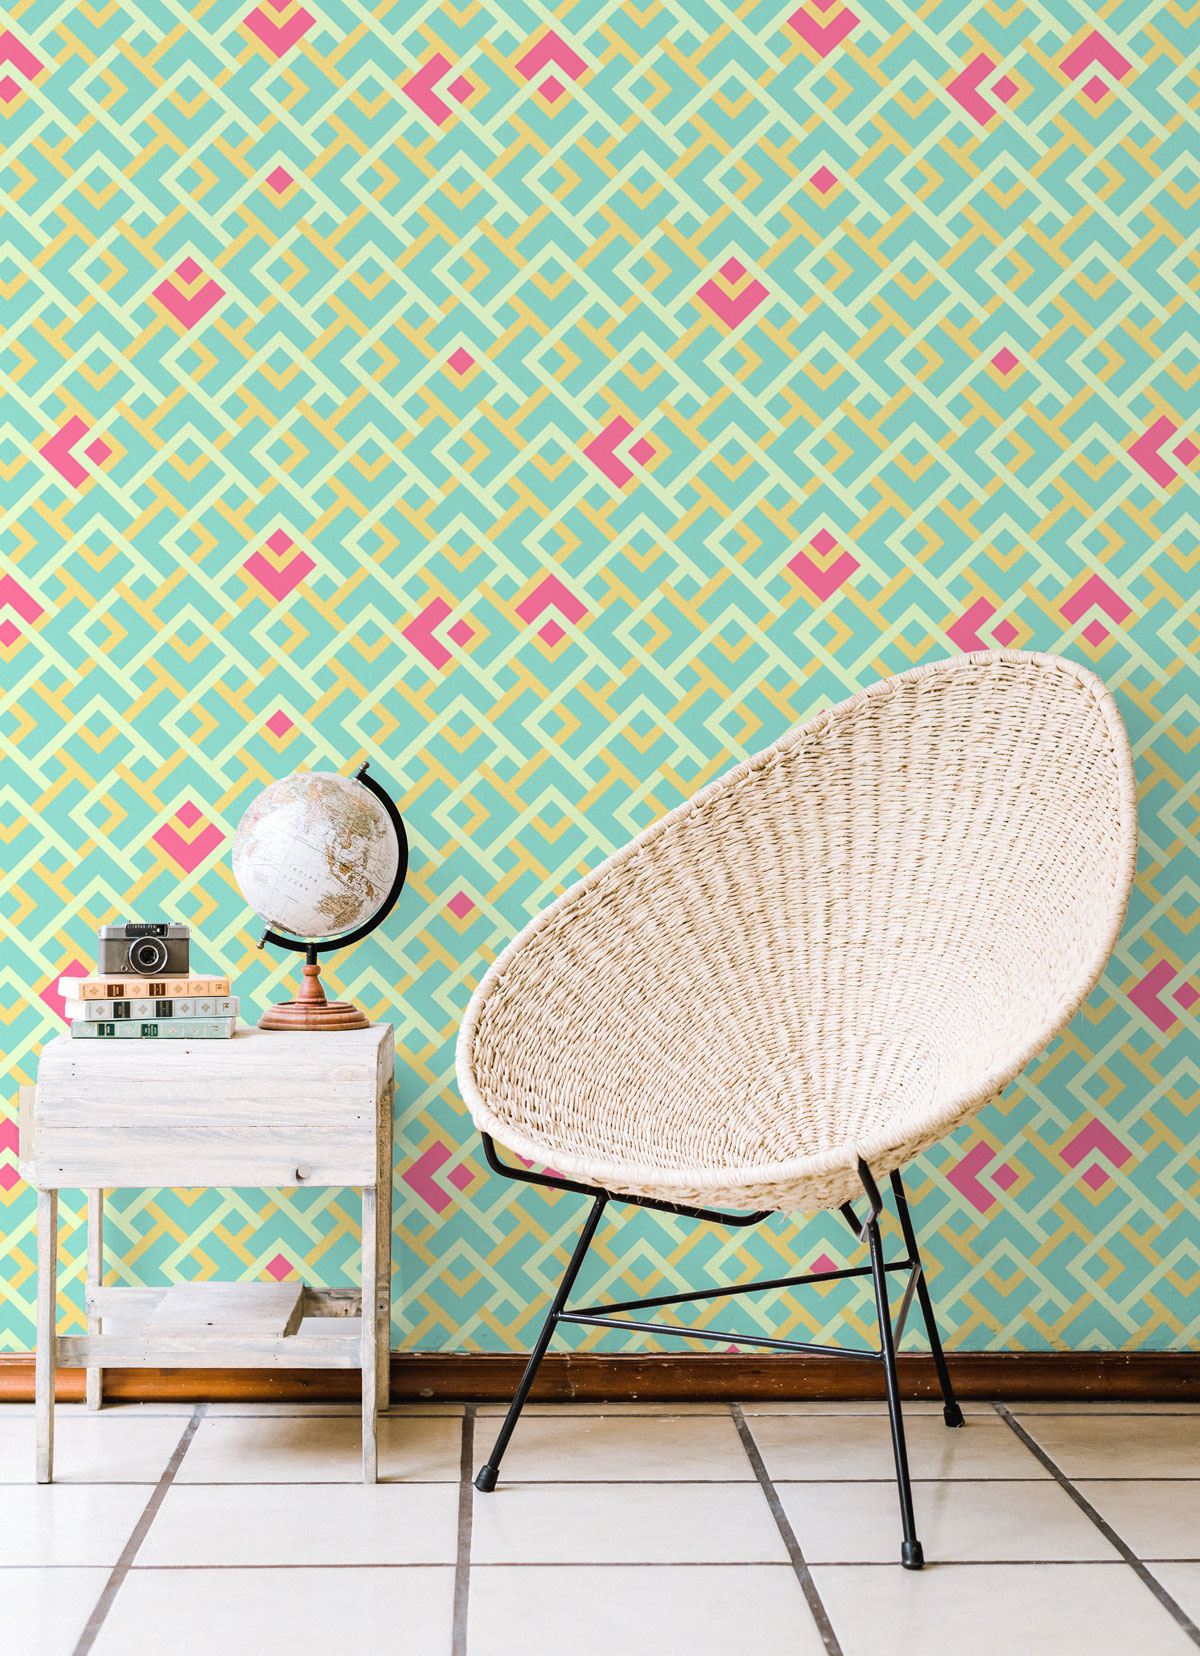 Playful Geometric Wallpaper in Watermelon Colors